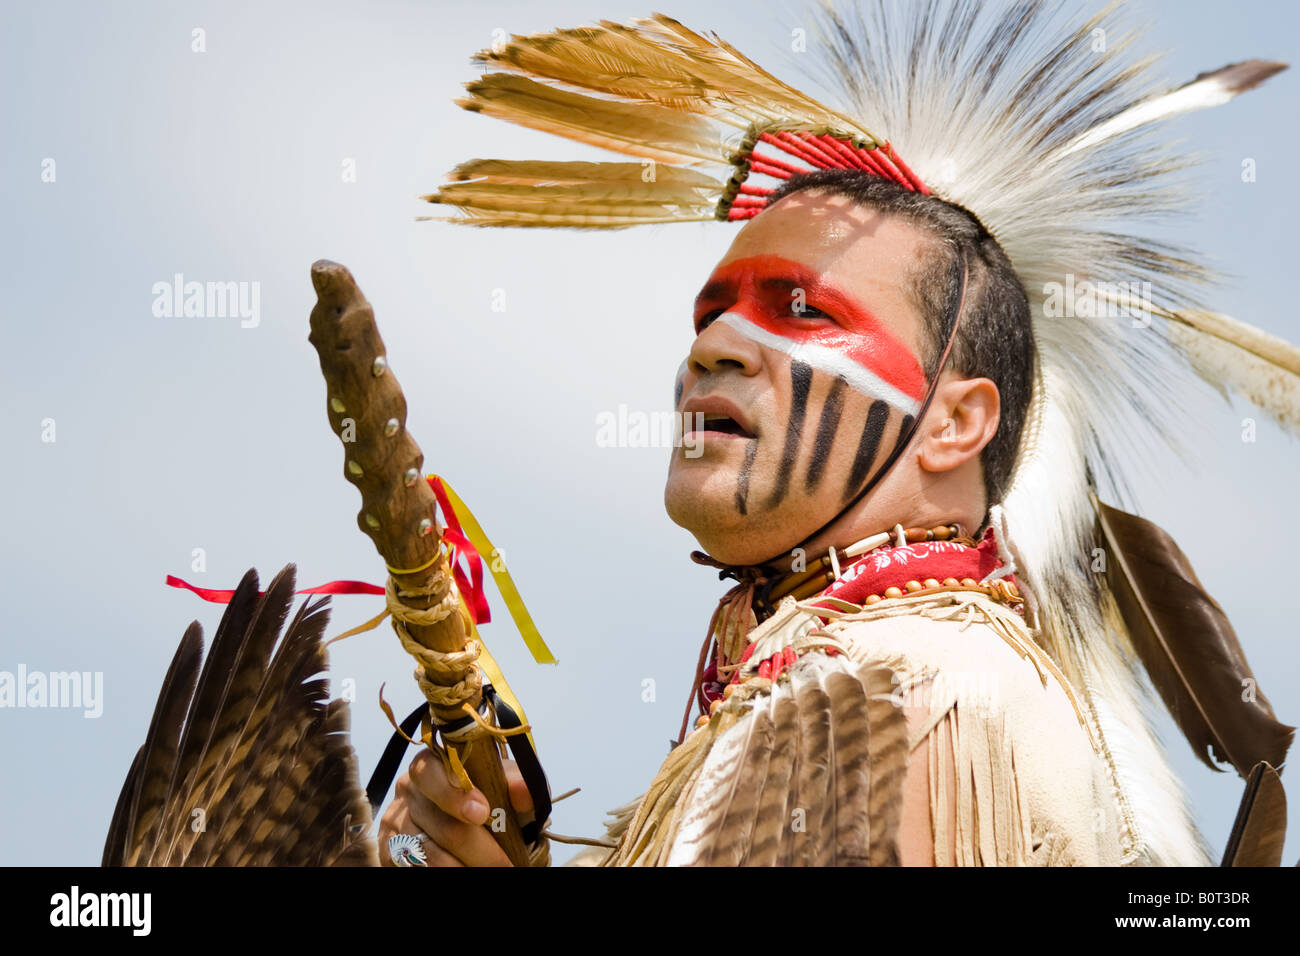 American Indian dancer at the 8th Annual Red Wing Native American PowWow in Virginia Beach, Virginia - Stock Image